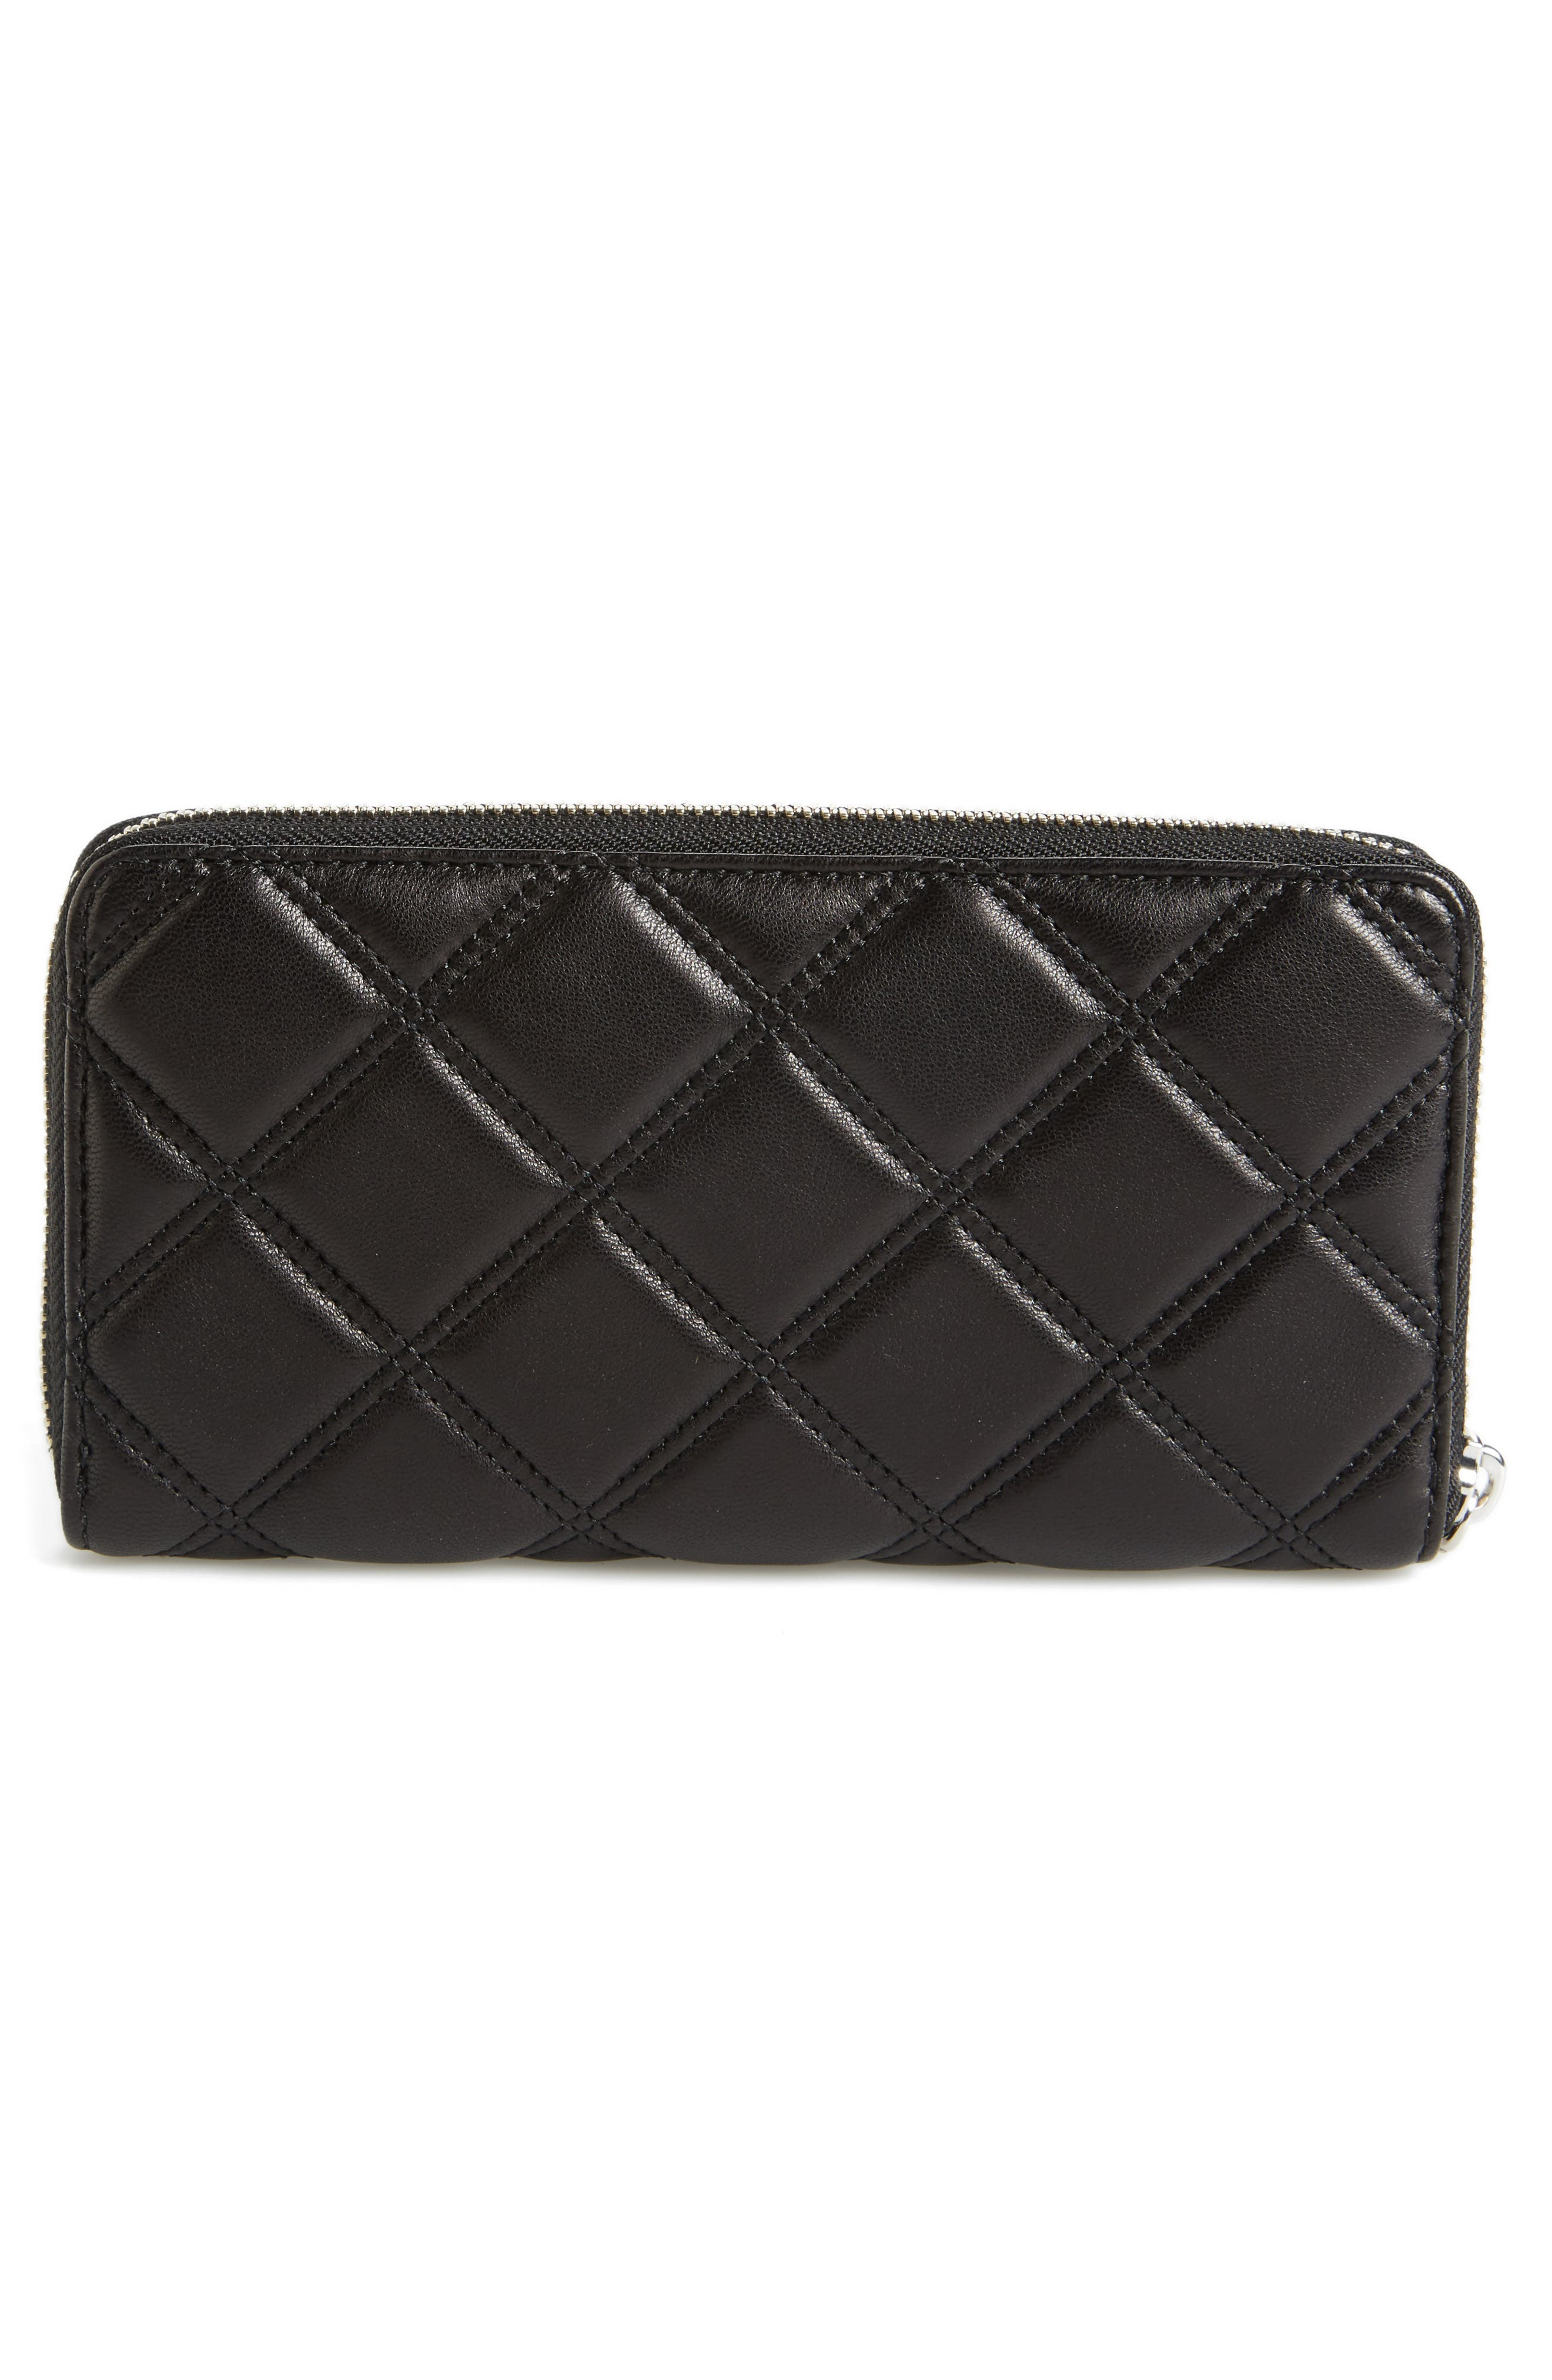 Quilted Leather Zip Wallet,                             Alternate thumbnail 4, color,                             Black